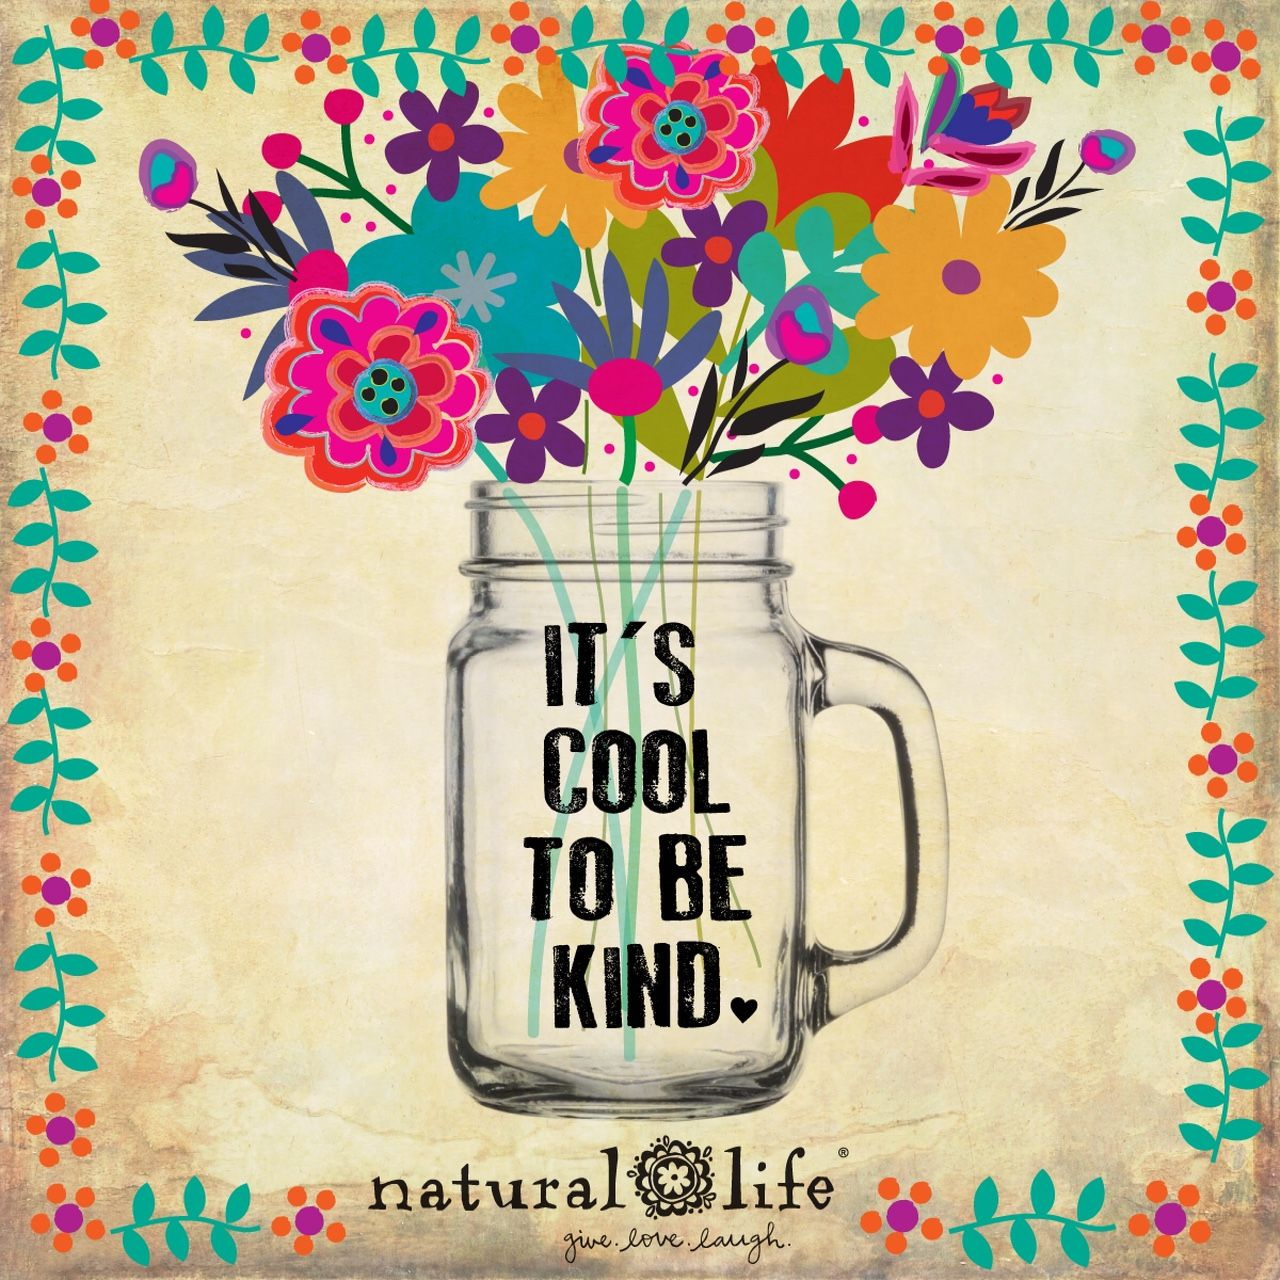 Being Cool Thoughts: Natural Life, Thoughts And